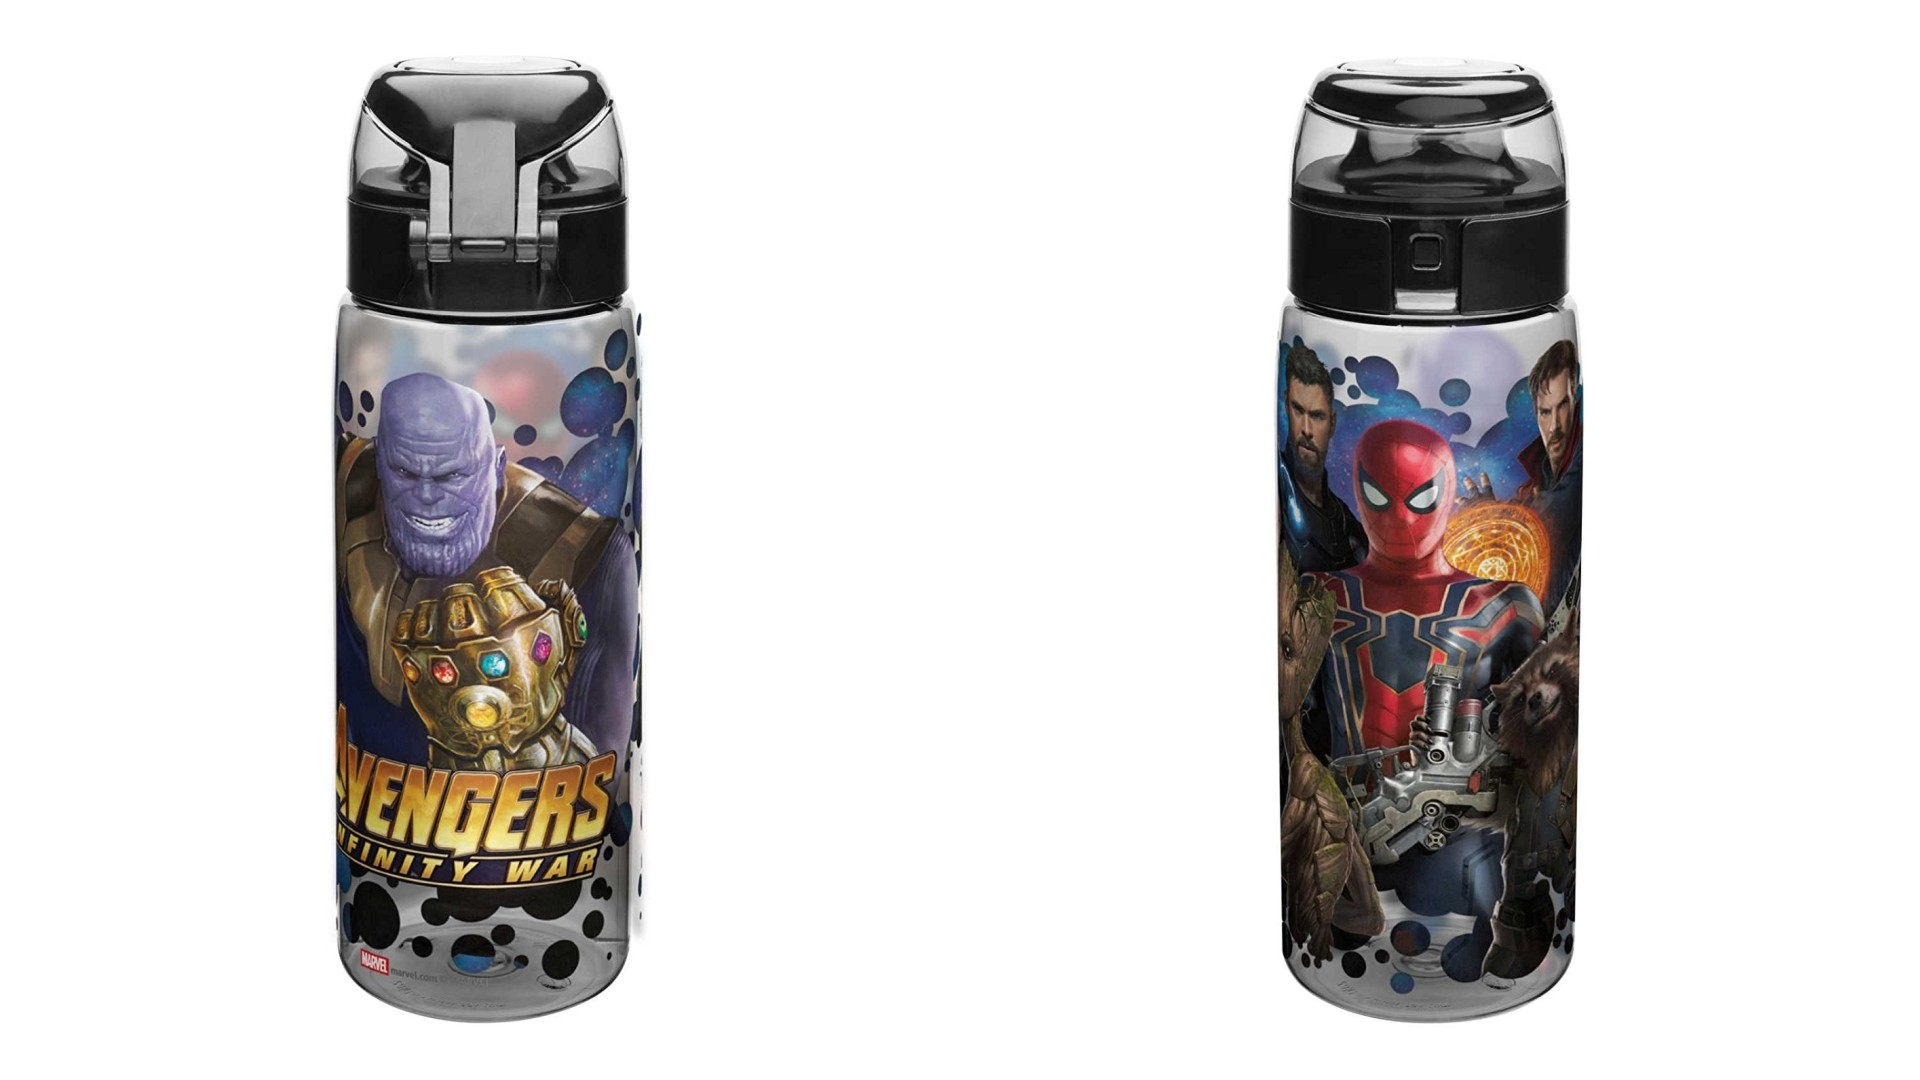 Avengers Infinity War merchandise Zak Designs water bottle